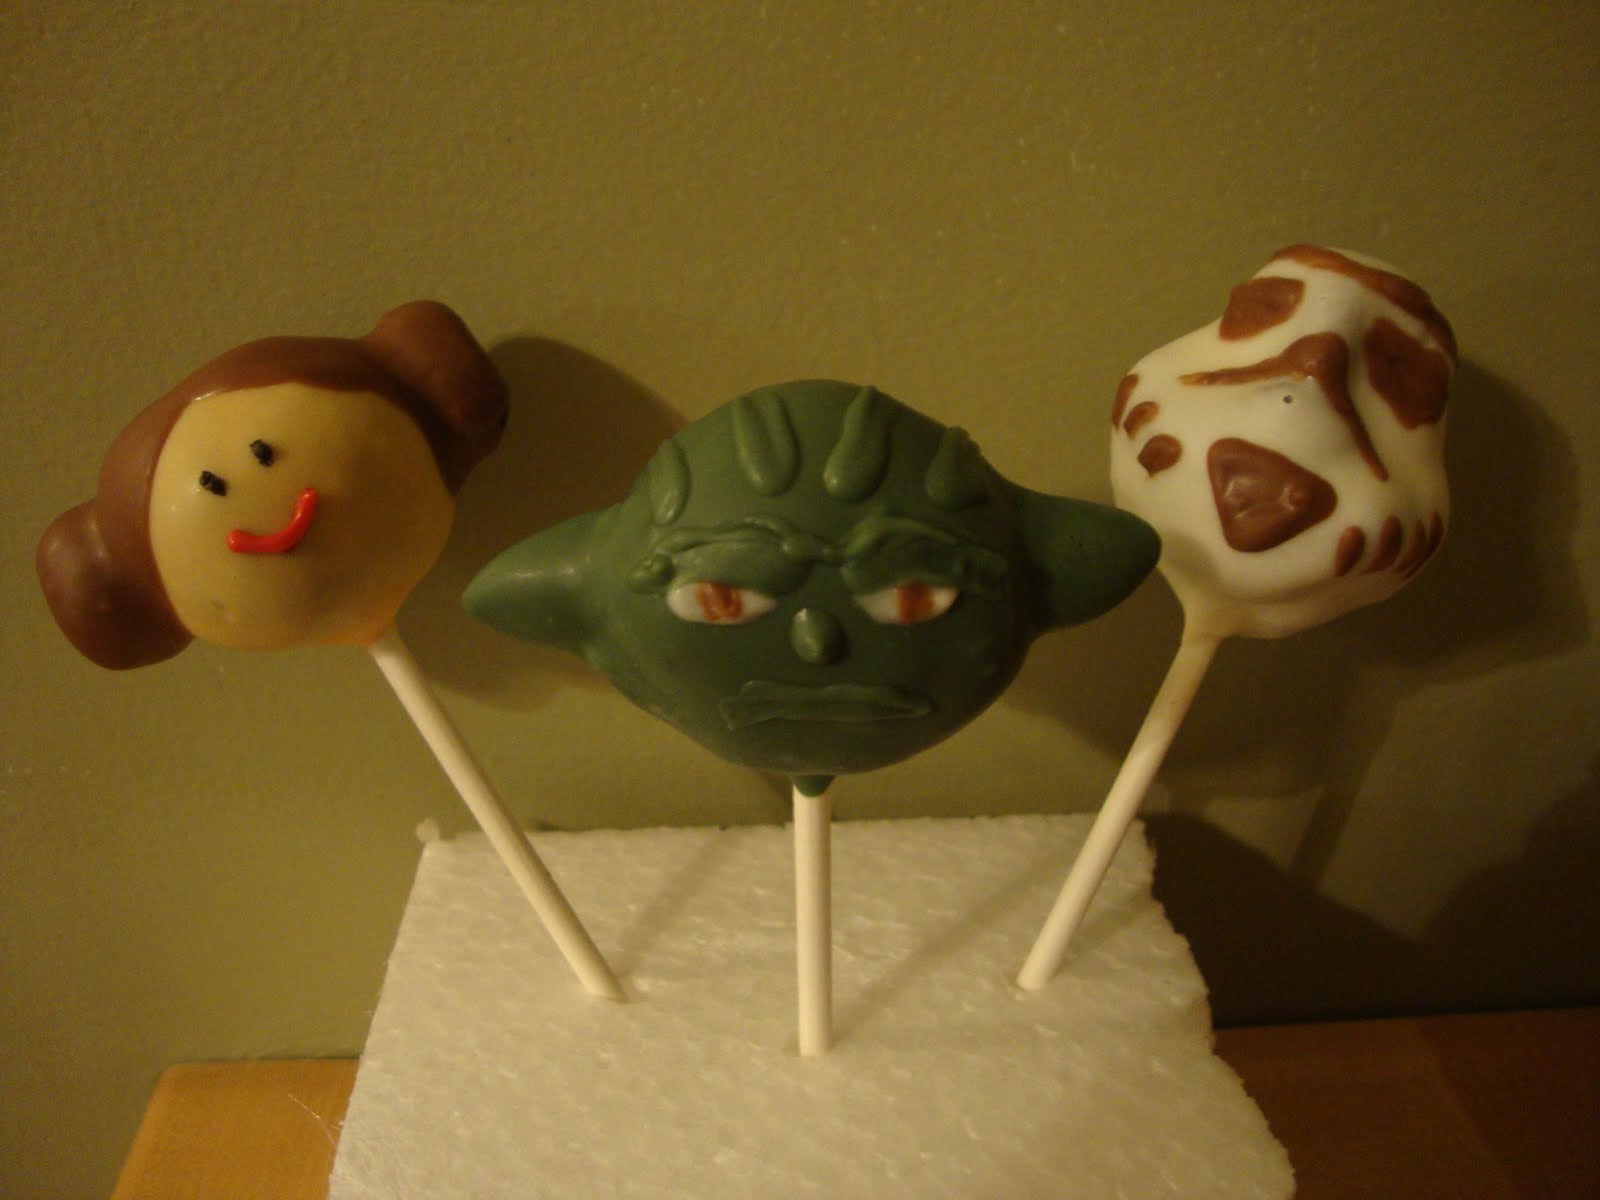 Star Wars Cake Pop Images : Kute by Kari: First Party Order- Star Wars Cake Pops!